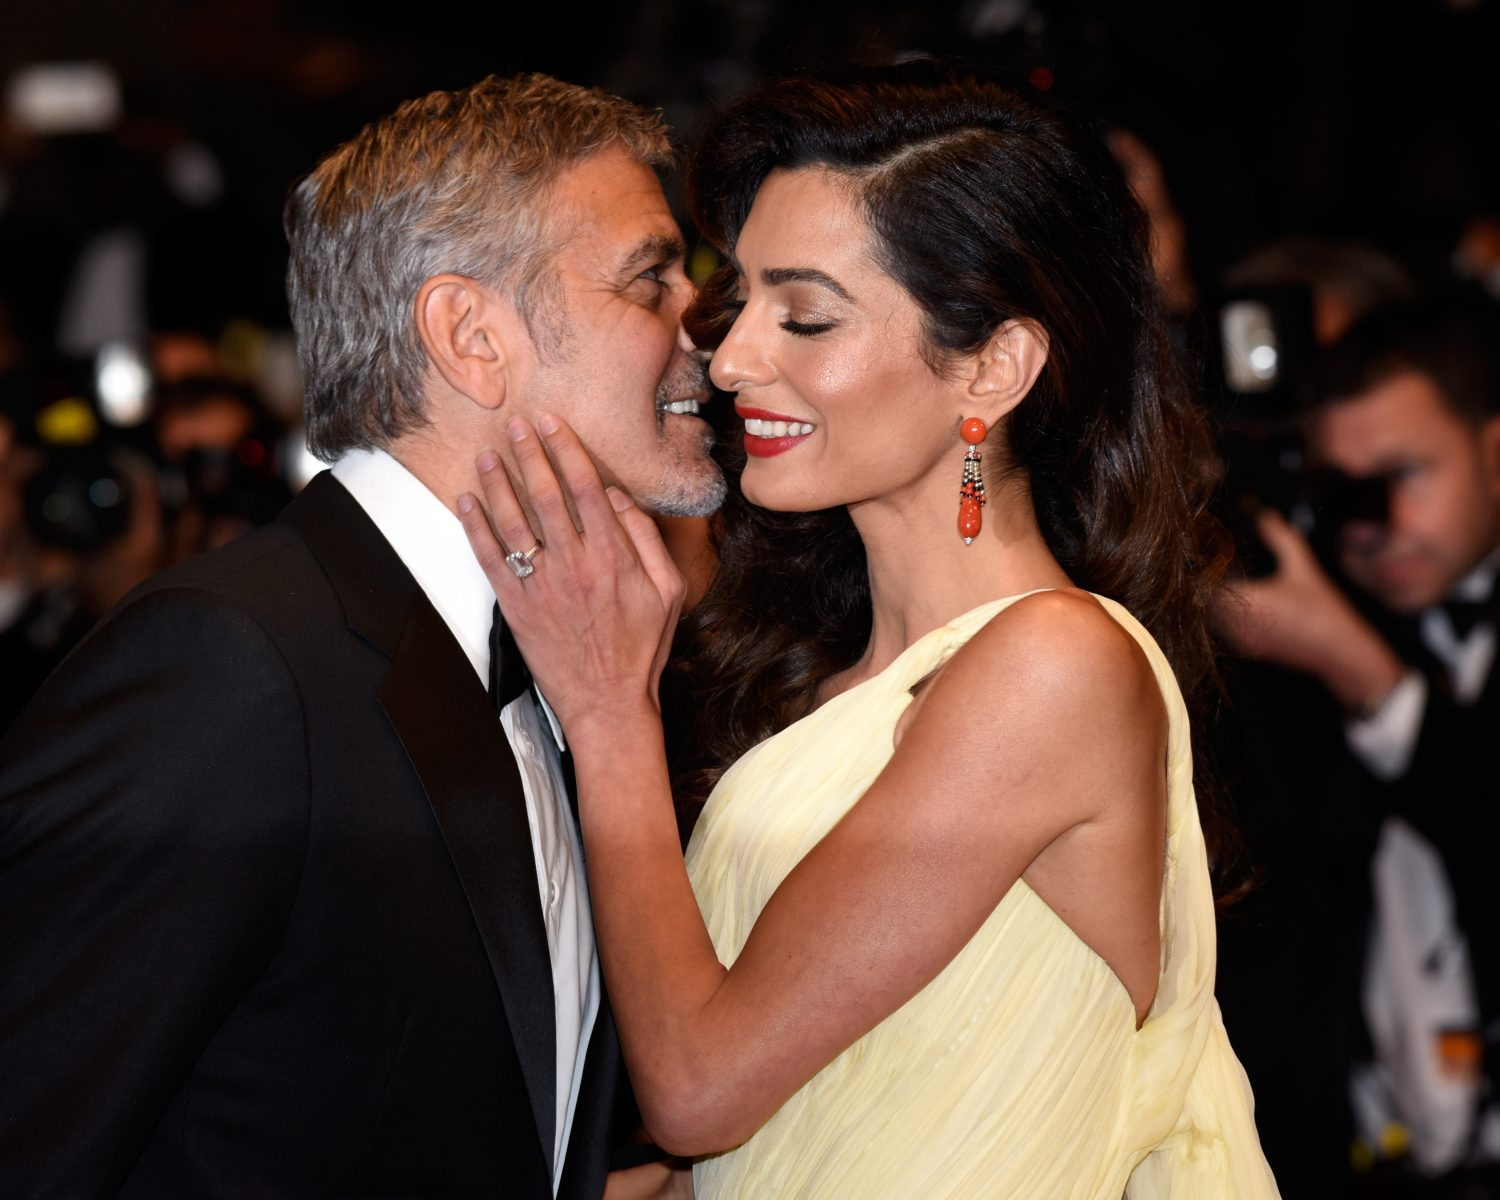 George Clooney and his darling officially sealed their relationship 09/29/2014 34